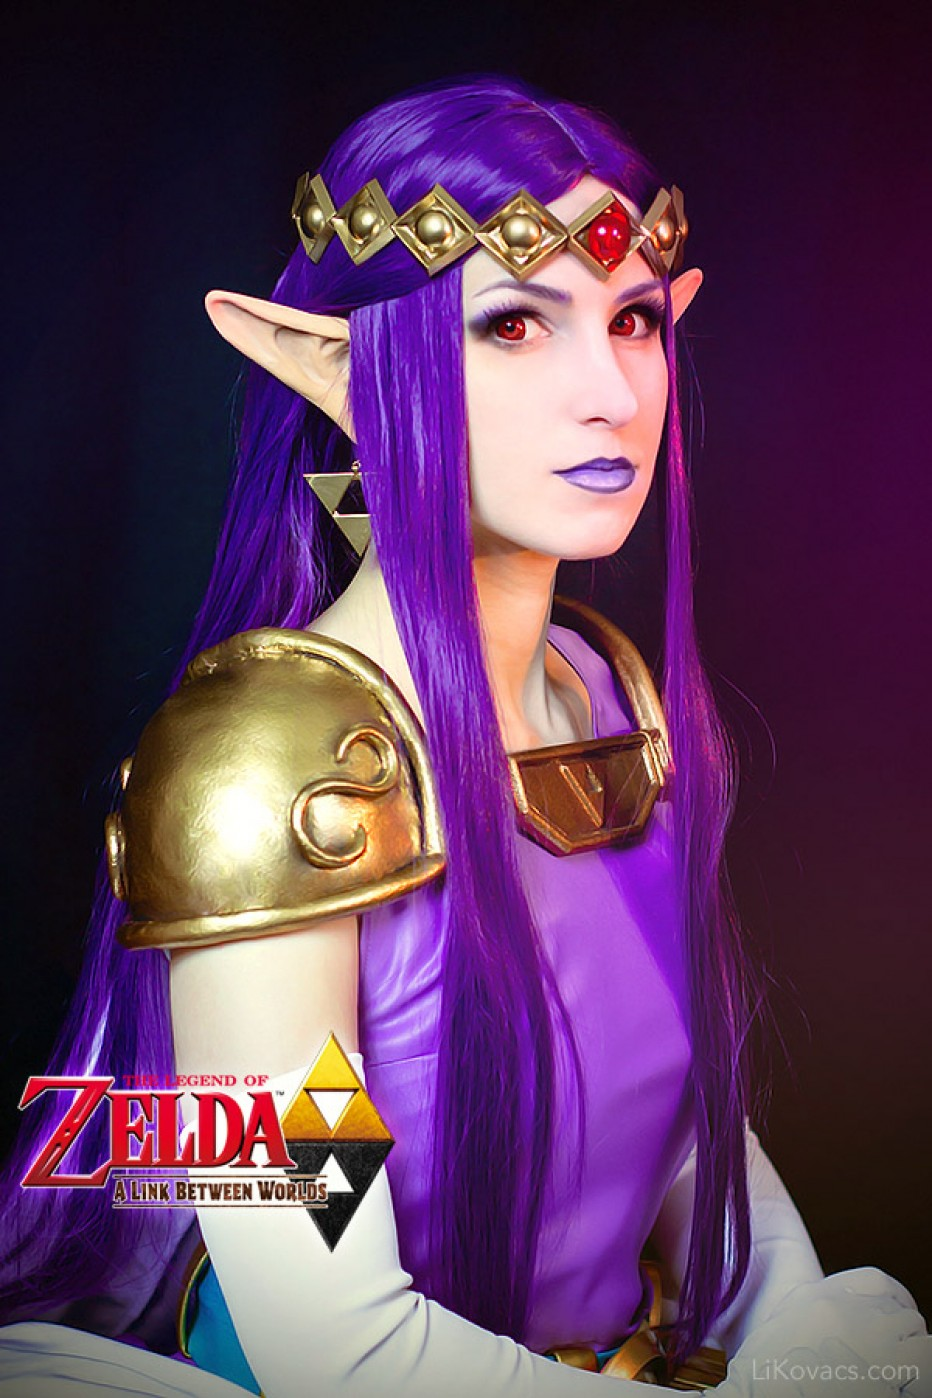 The-Legend-of-Zelda-Hilda-Cosplay-Gamers-Heroes-3.jpg